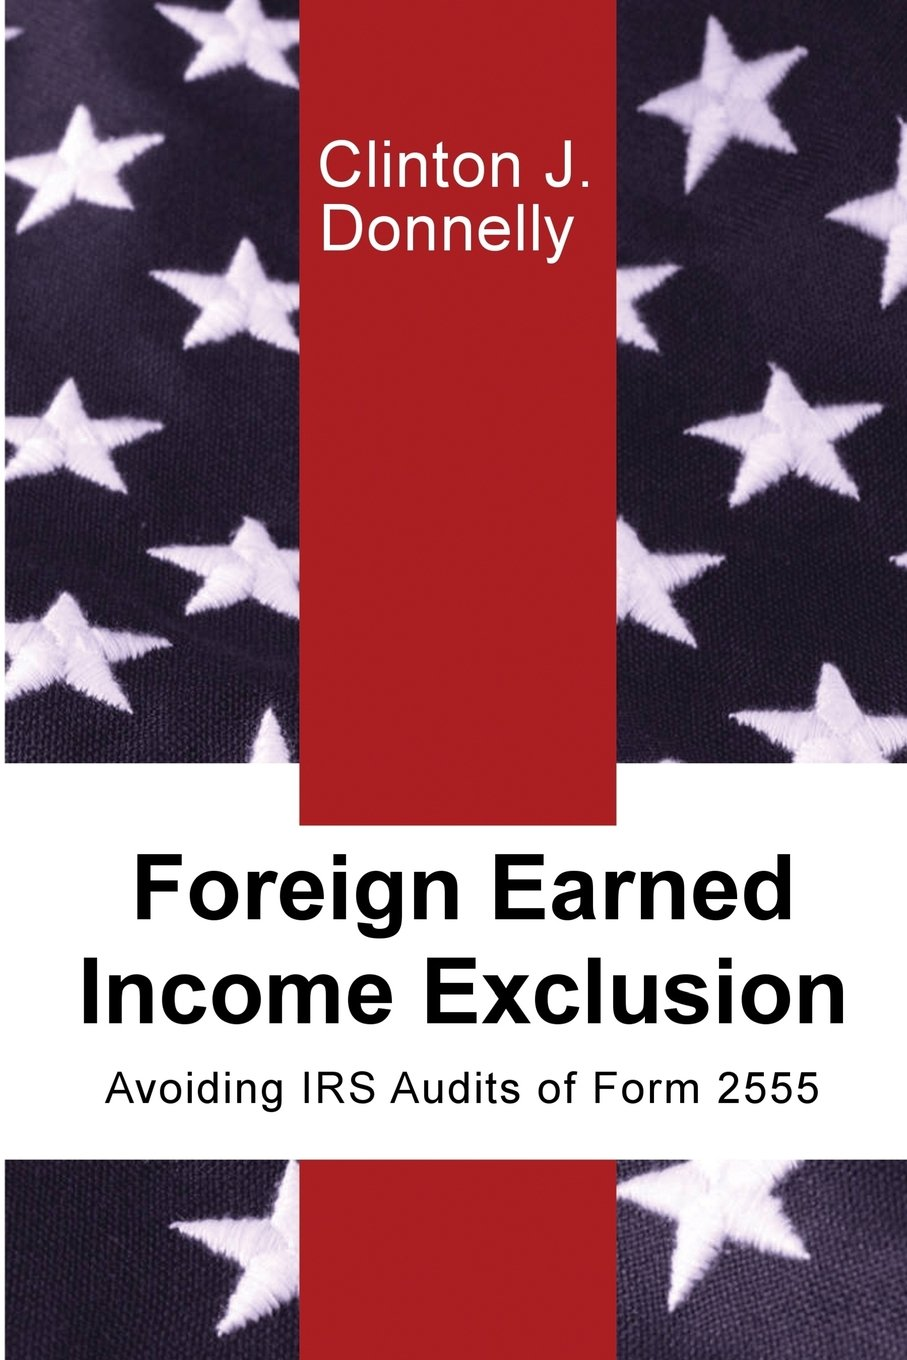 Foreign earned income exclusion avoiding irs audits of form 2555 foreign earned income exclusion avoiding irs audits of form 2555 clinton j donnelly 9780998672502 amazon books falaconquin